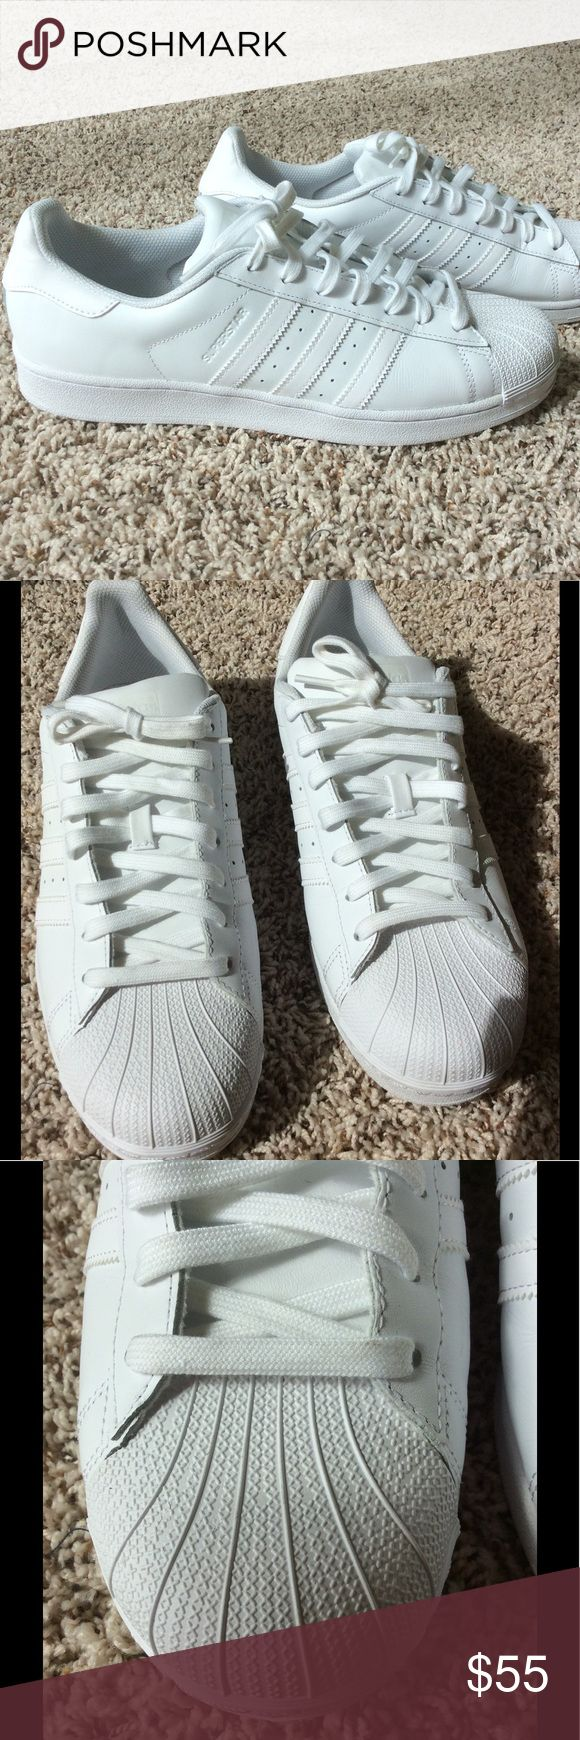 👟 Adidas Superstar Shell Toe Sneakers All white. Great condition. One small scuff. No box. adidas Shoes Sneakers